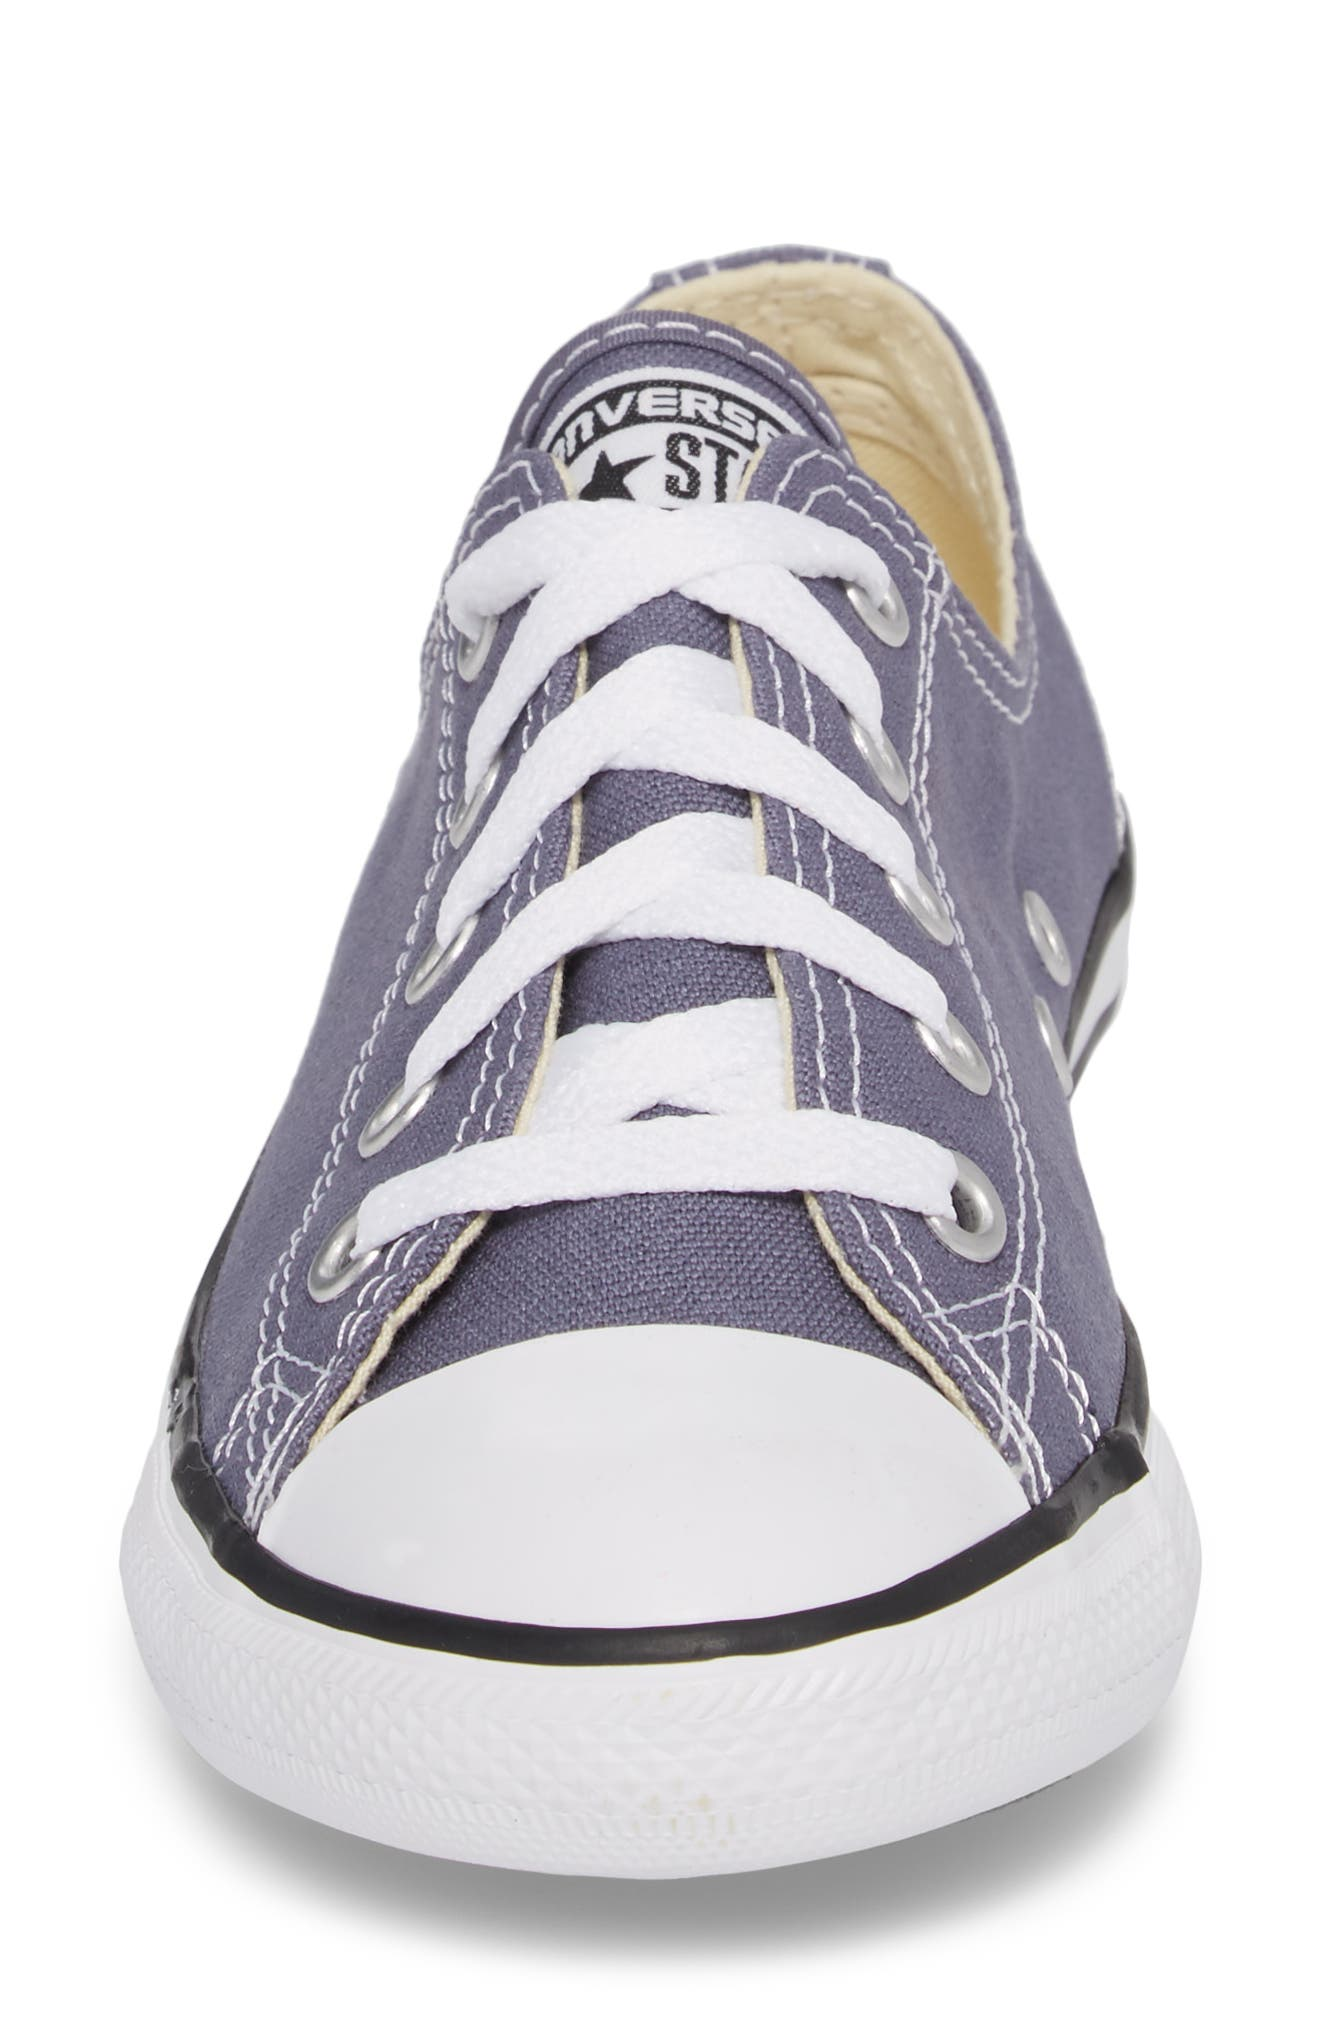 Chuck Taylor<sup>®</sup> All Star<sup>®</sup> Dainty Ox Low Top Sneaker,                             Alternate thumbnail 4, color,                             023